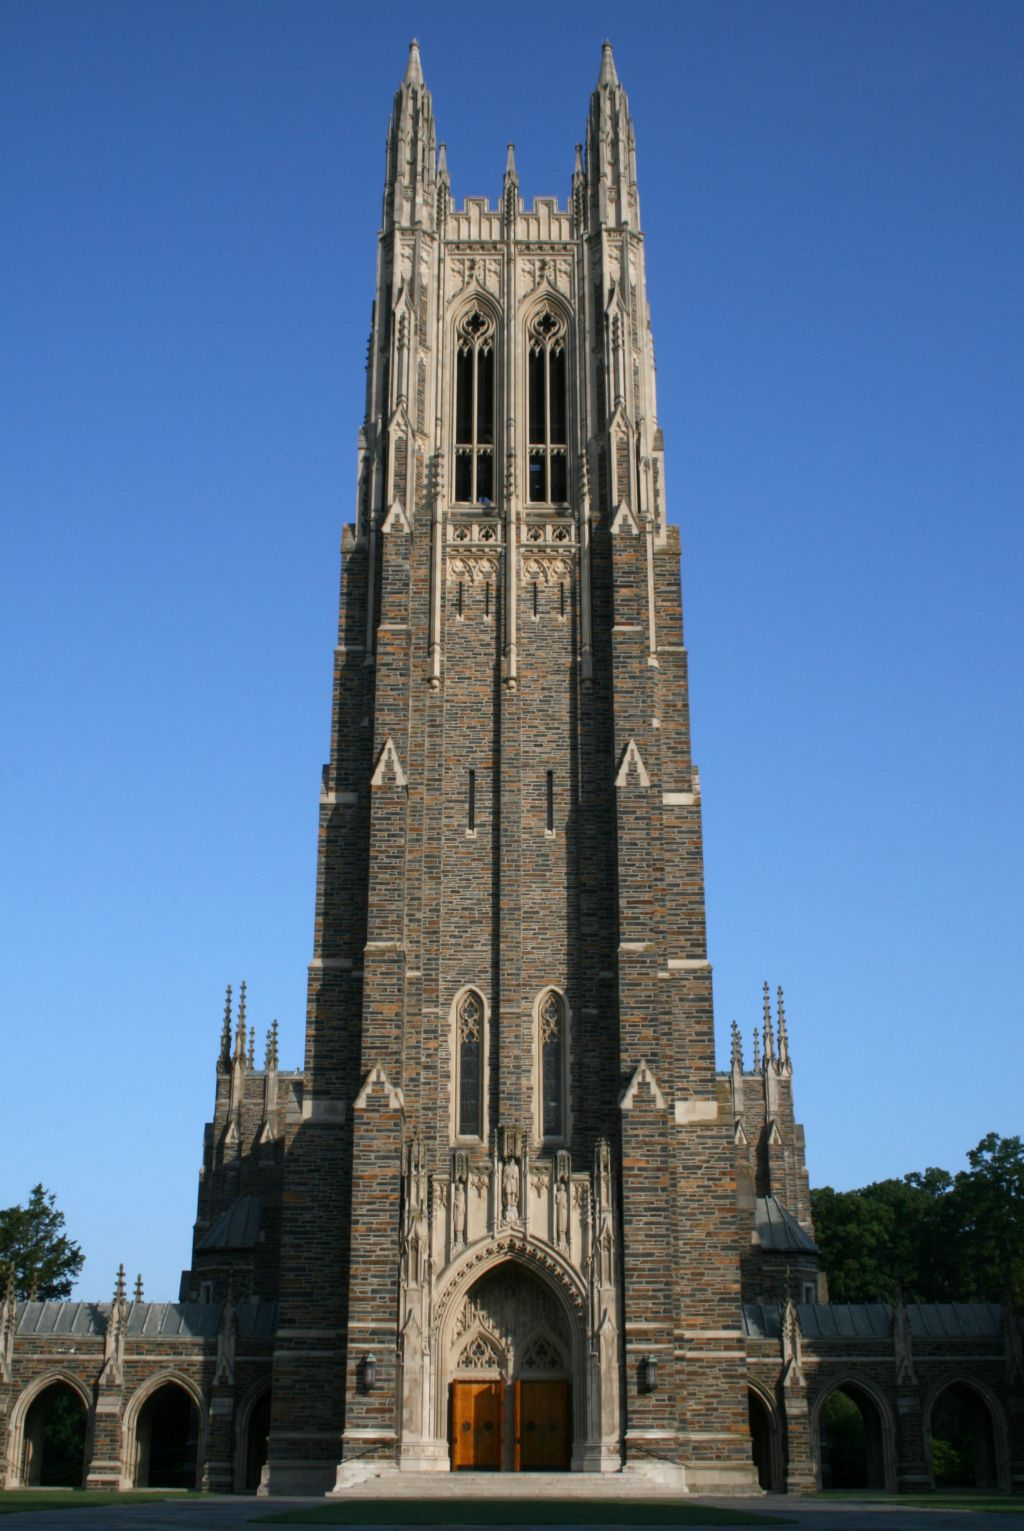 worksheet on robert browning s my last duchess writework english duke chapel at duke university in durham north carolina français le